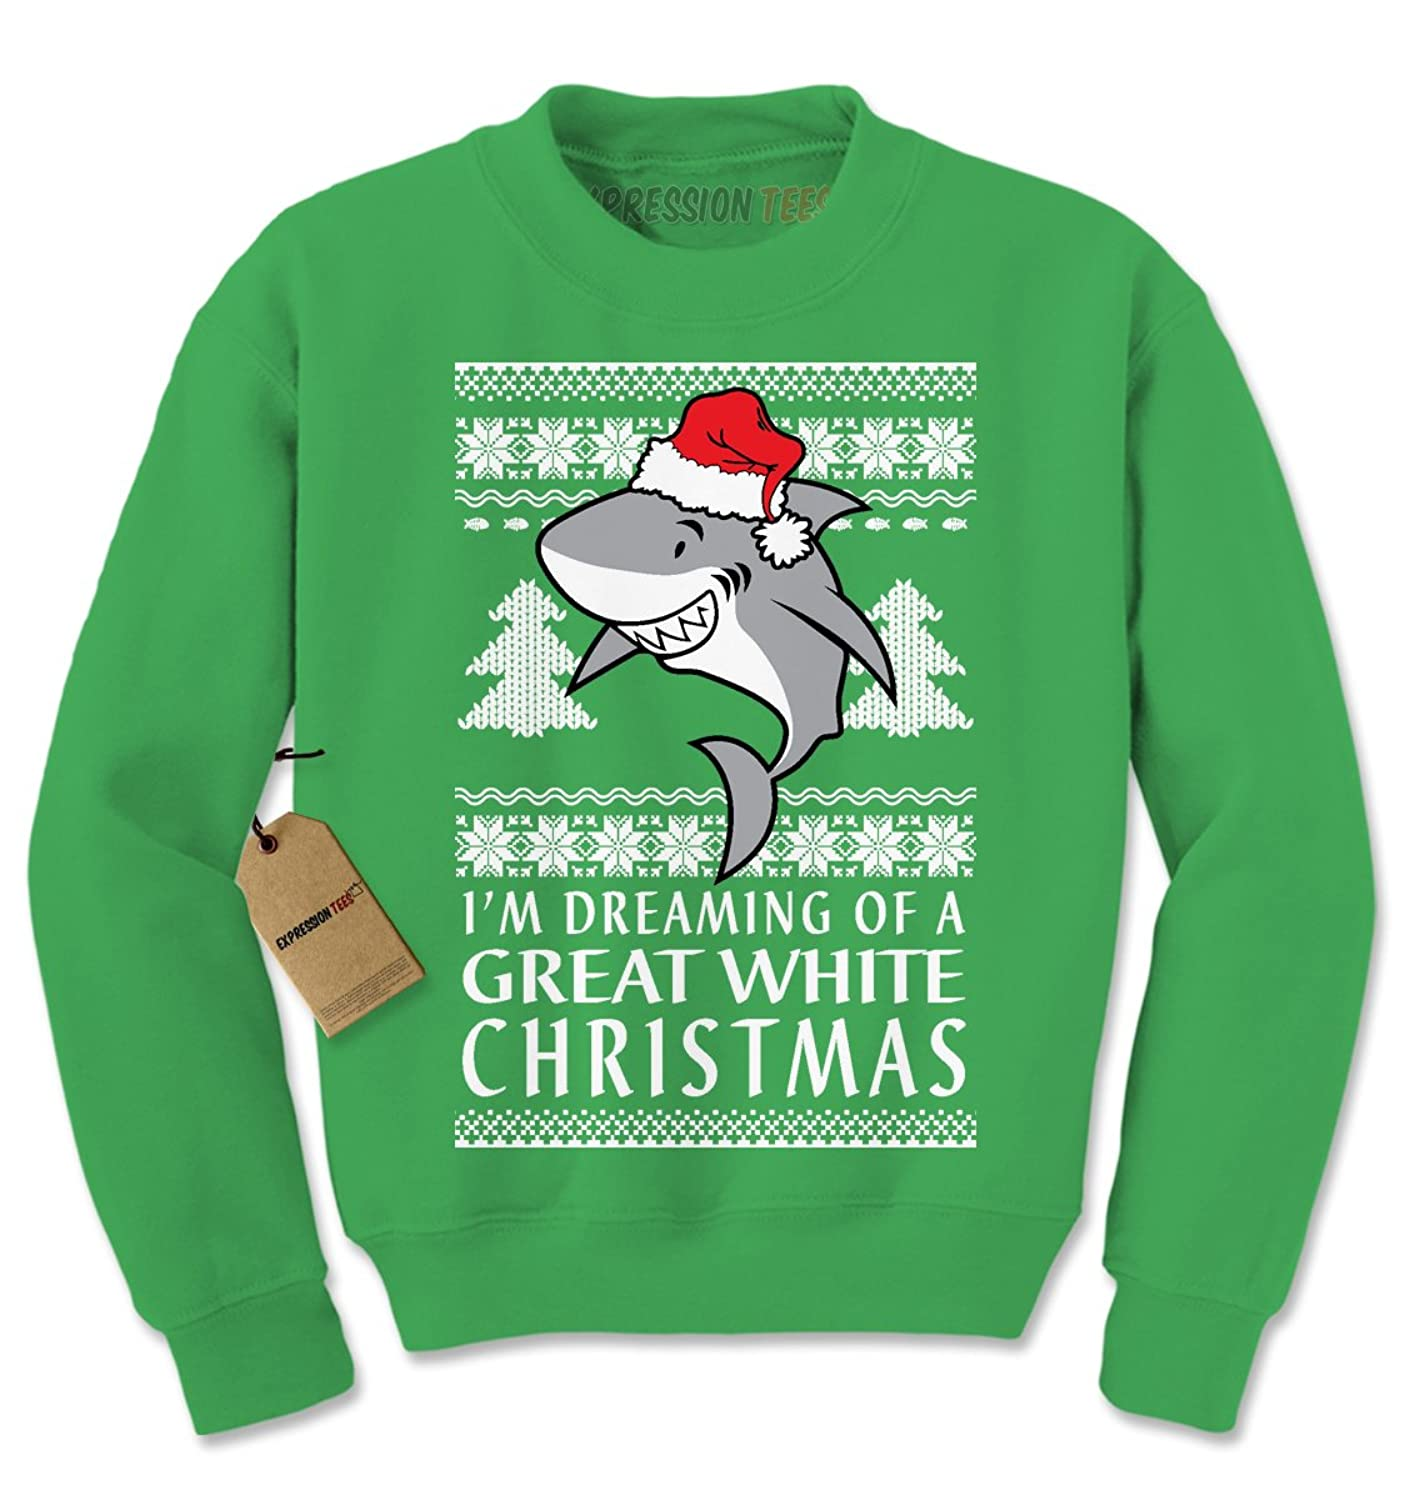 Great Christmas Hot White Dreaming 2017 Sale Expression A Of Tees qvfFzvxw0